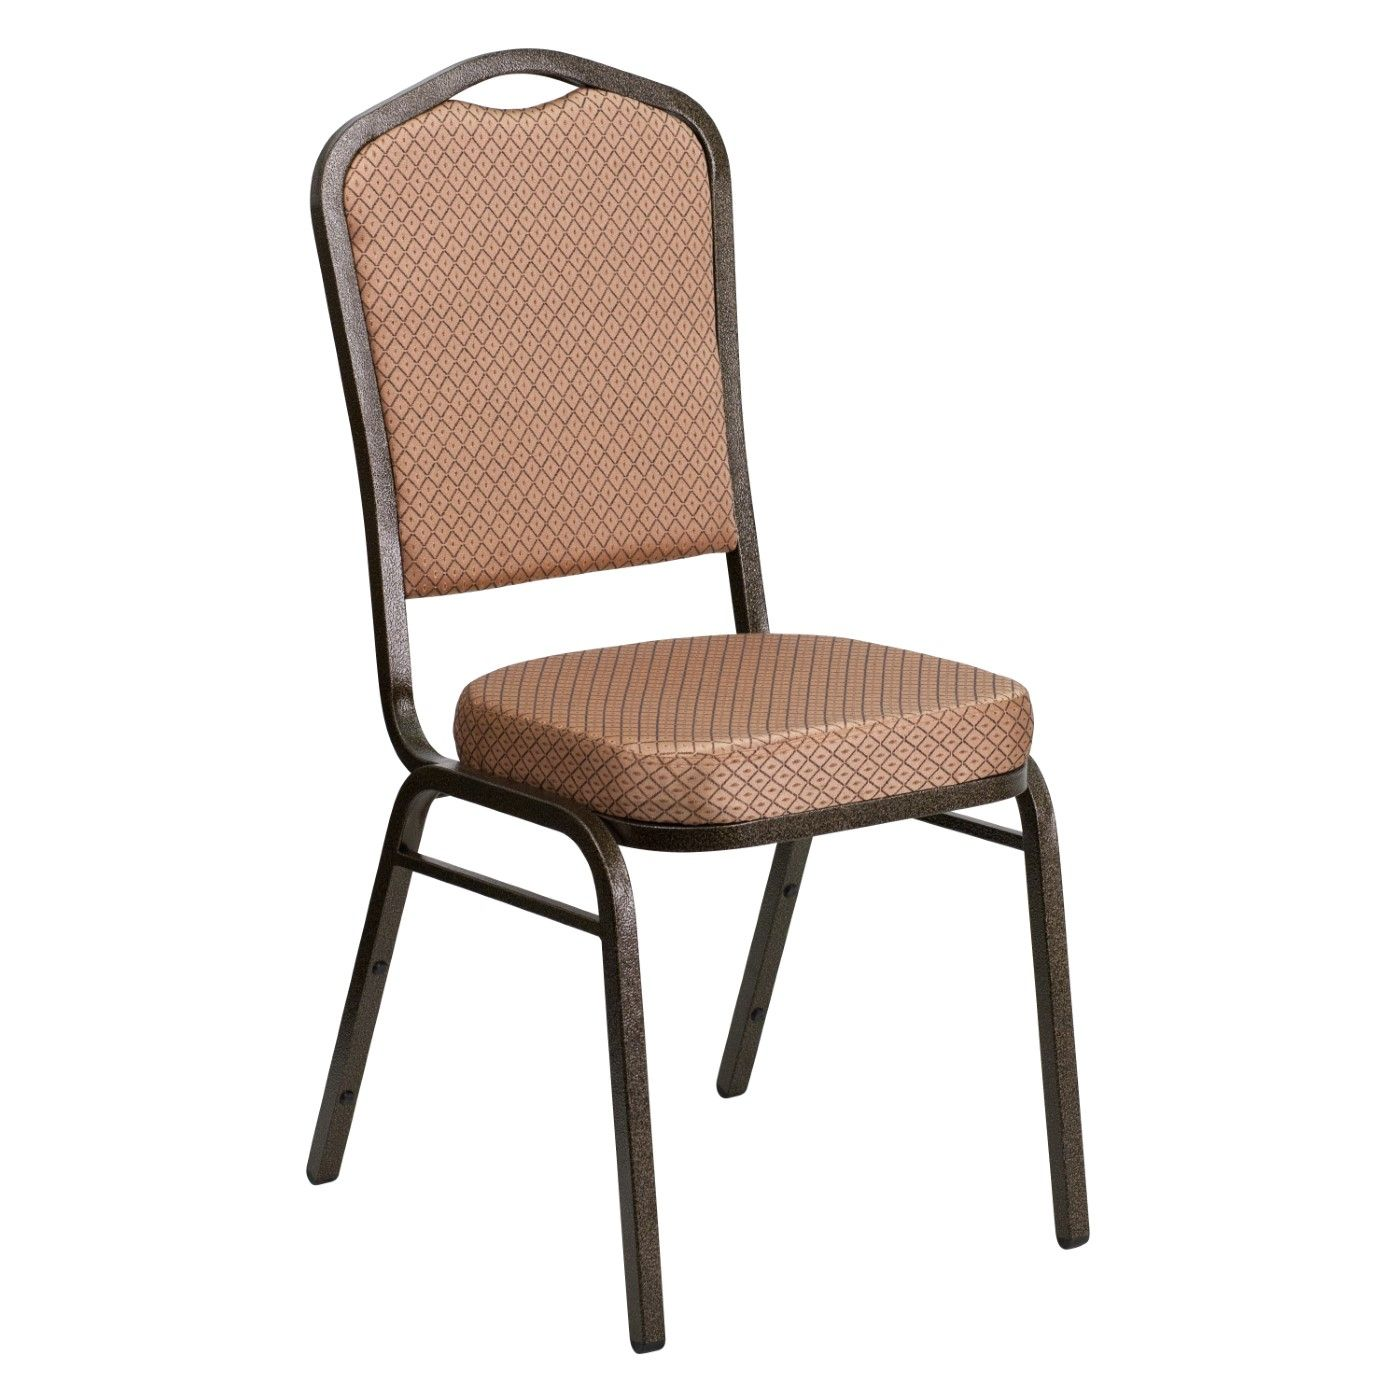 TOUGH ENOUGH Series Crown Back Stacking Banquet Chair in Gold Diamond Patterned Fabric - Gold Vein Frame